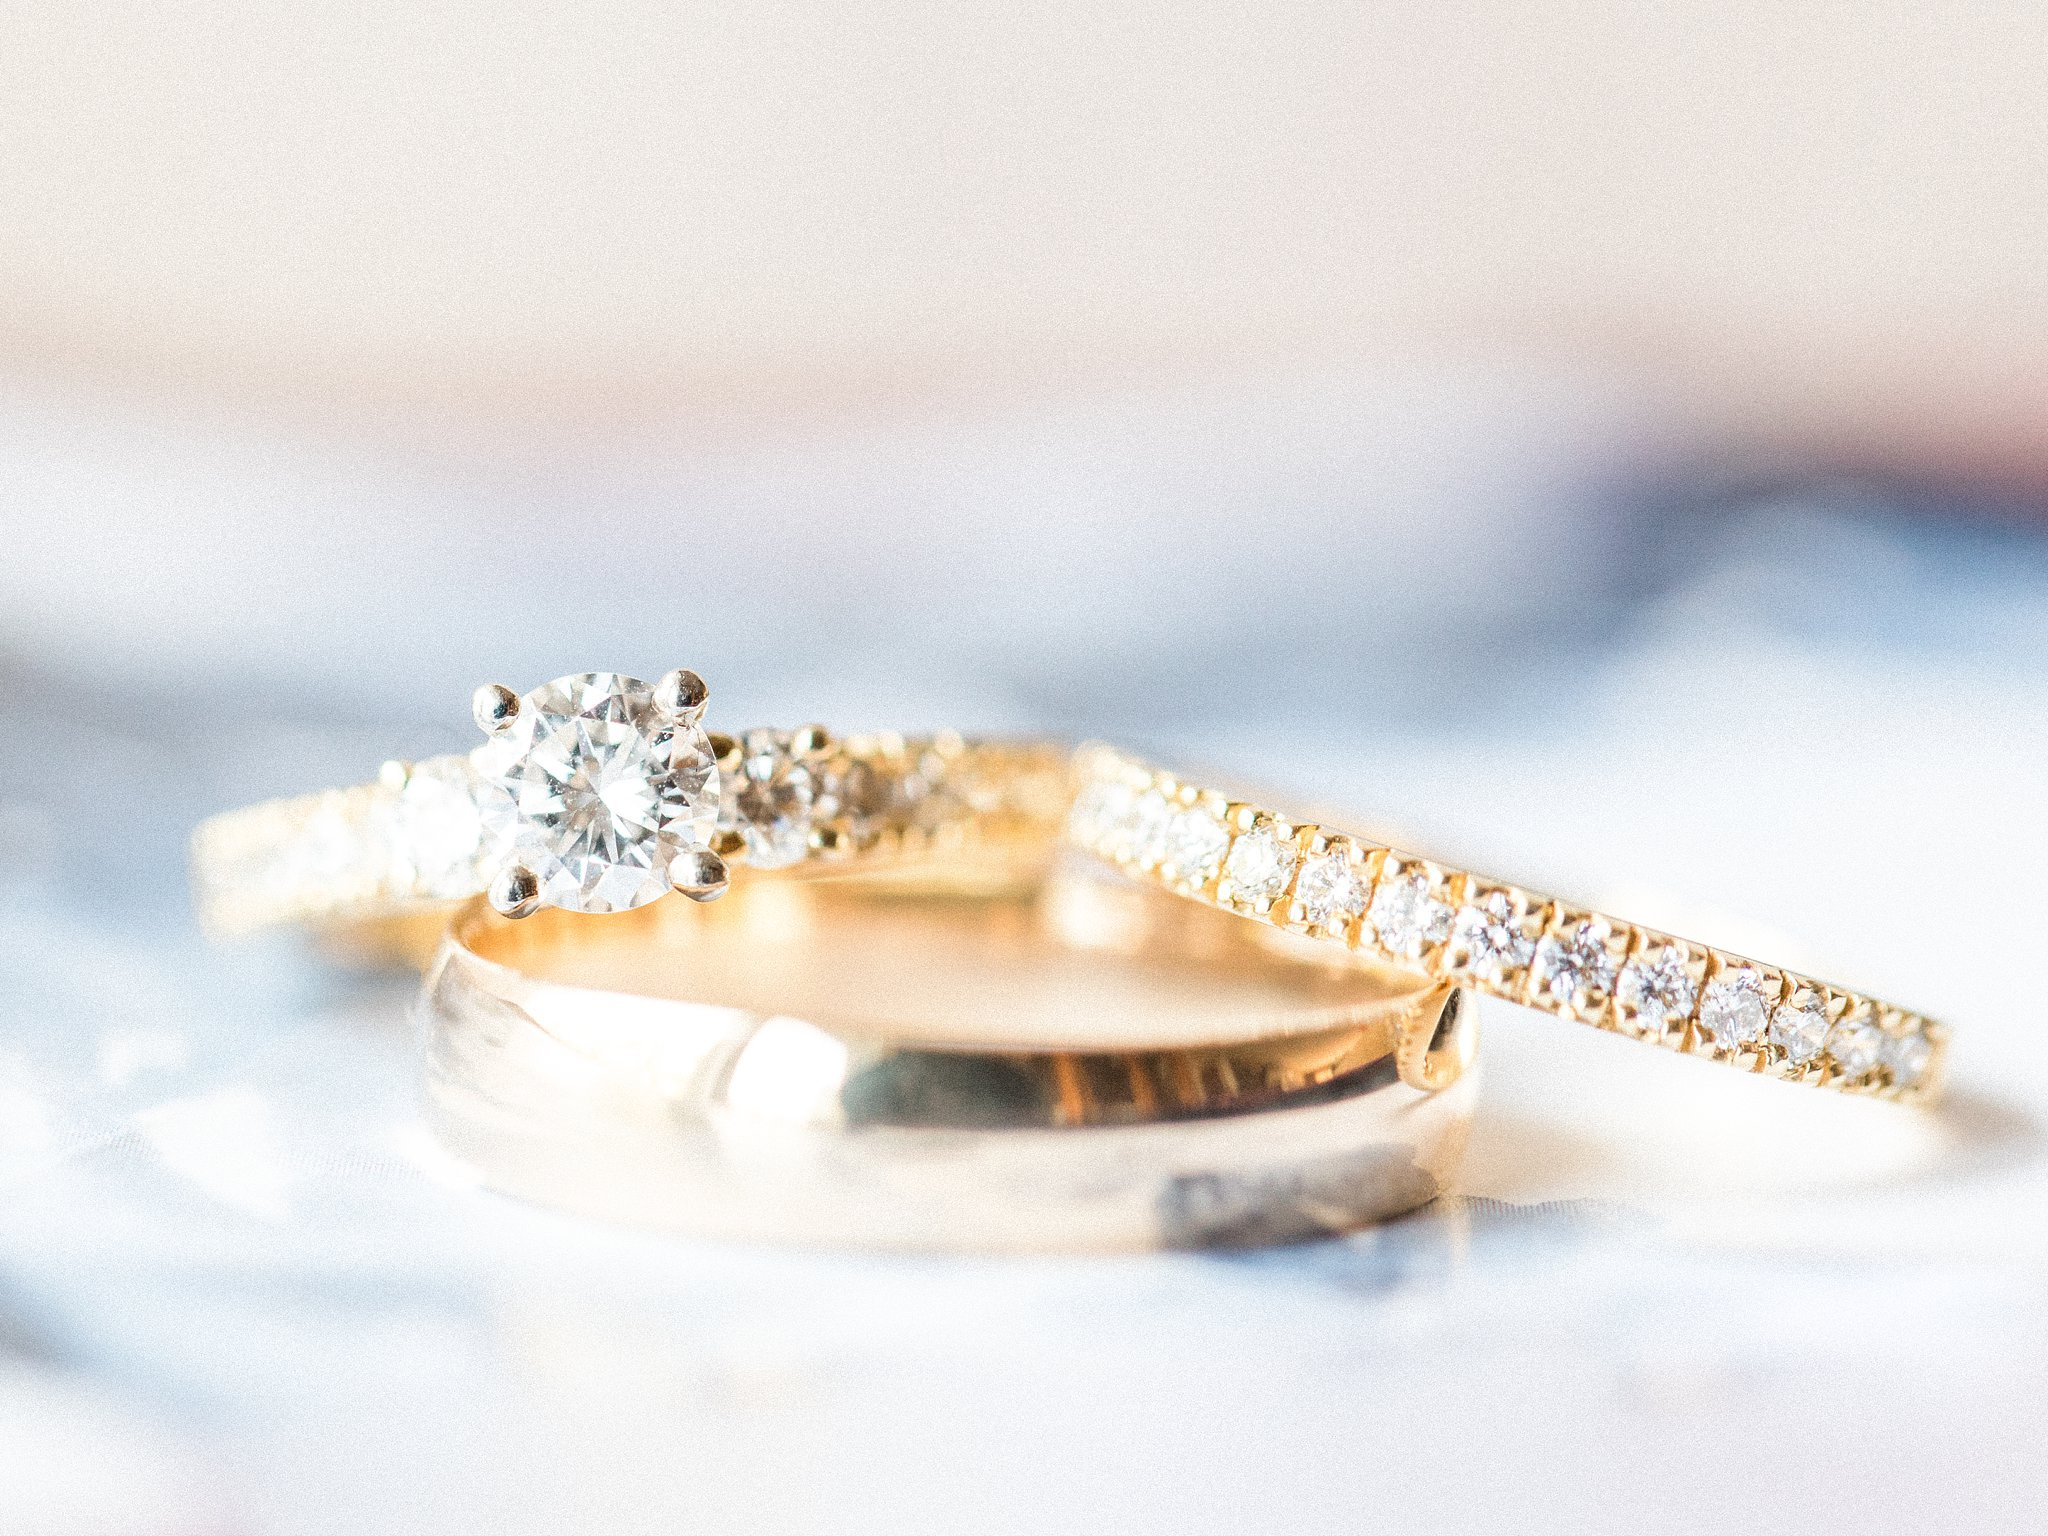 Yellow gold engagement ring and wedding band, Hilton Garden Inn Ottawa Airport Hotel Wedding